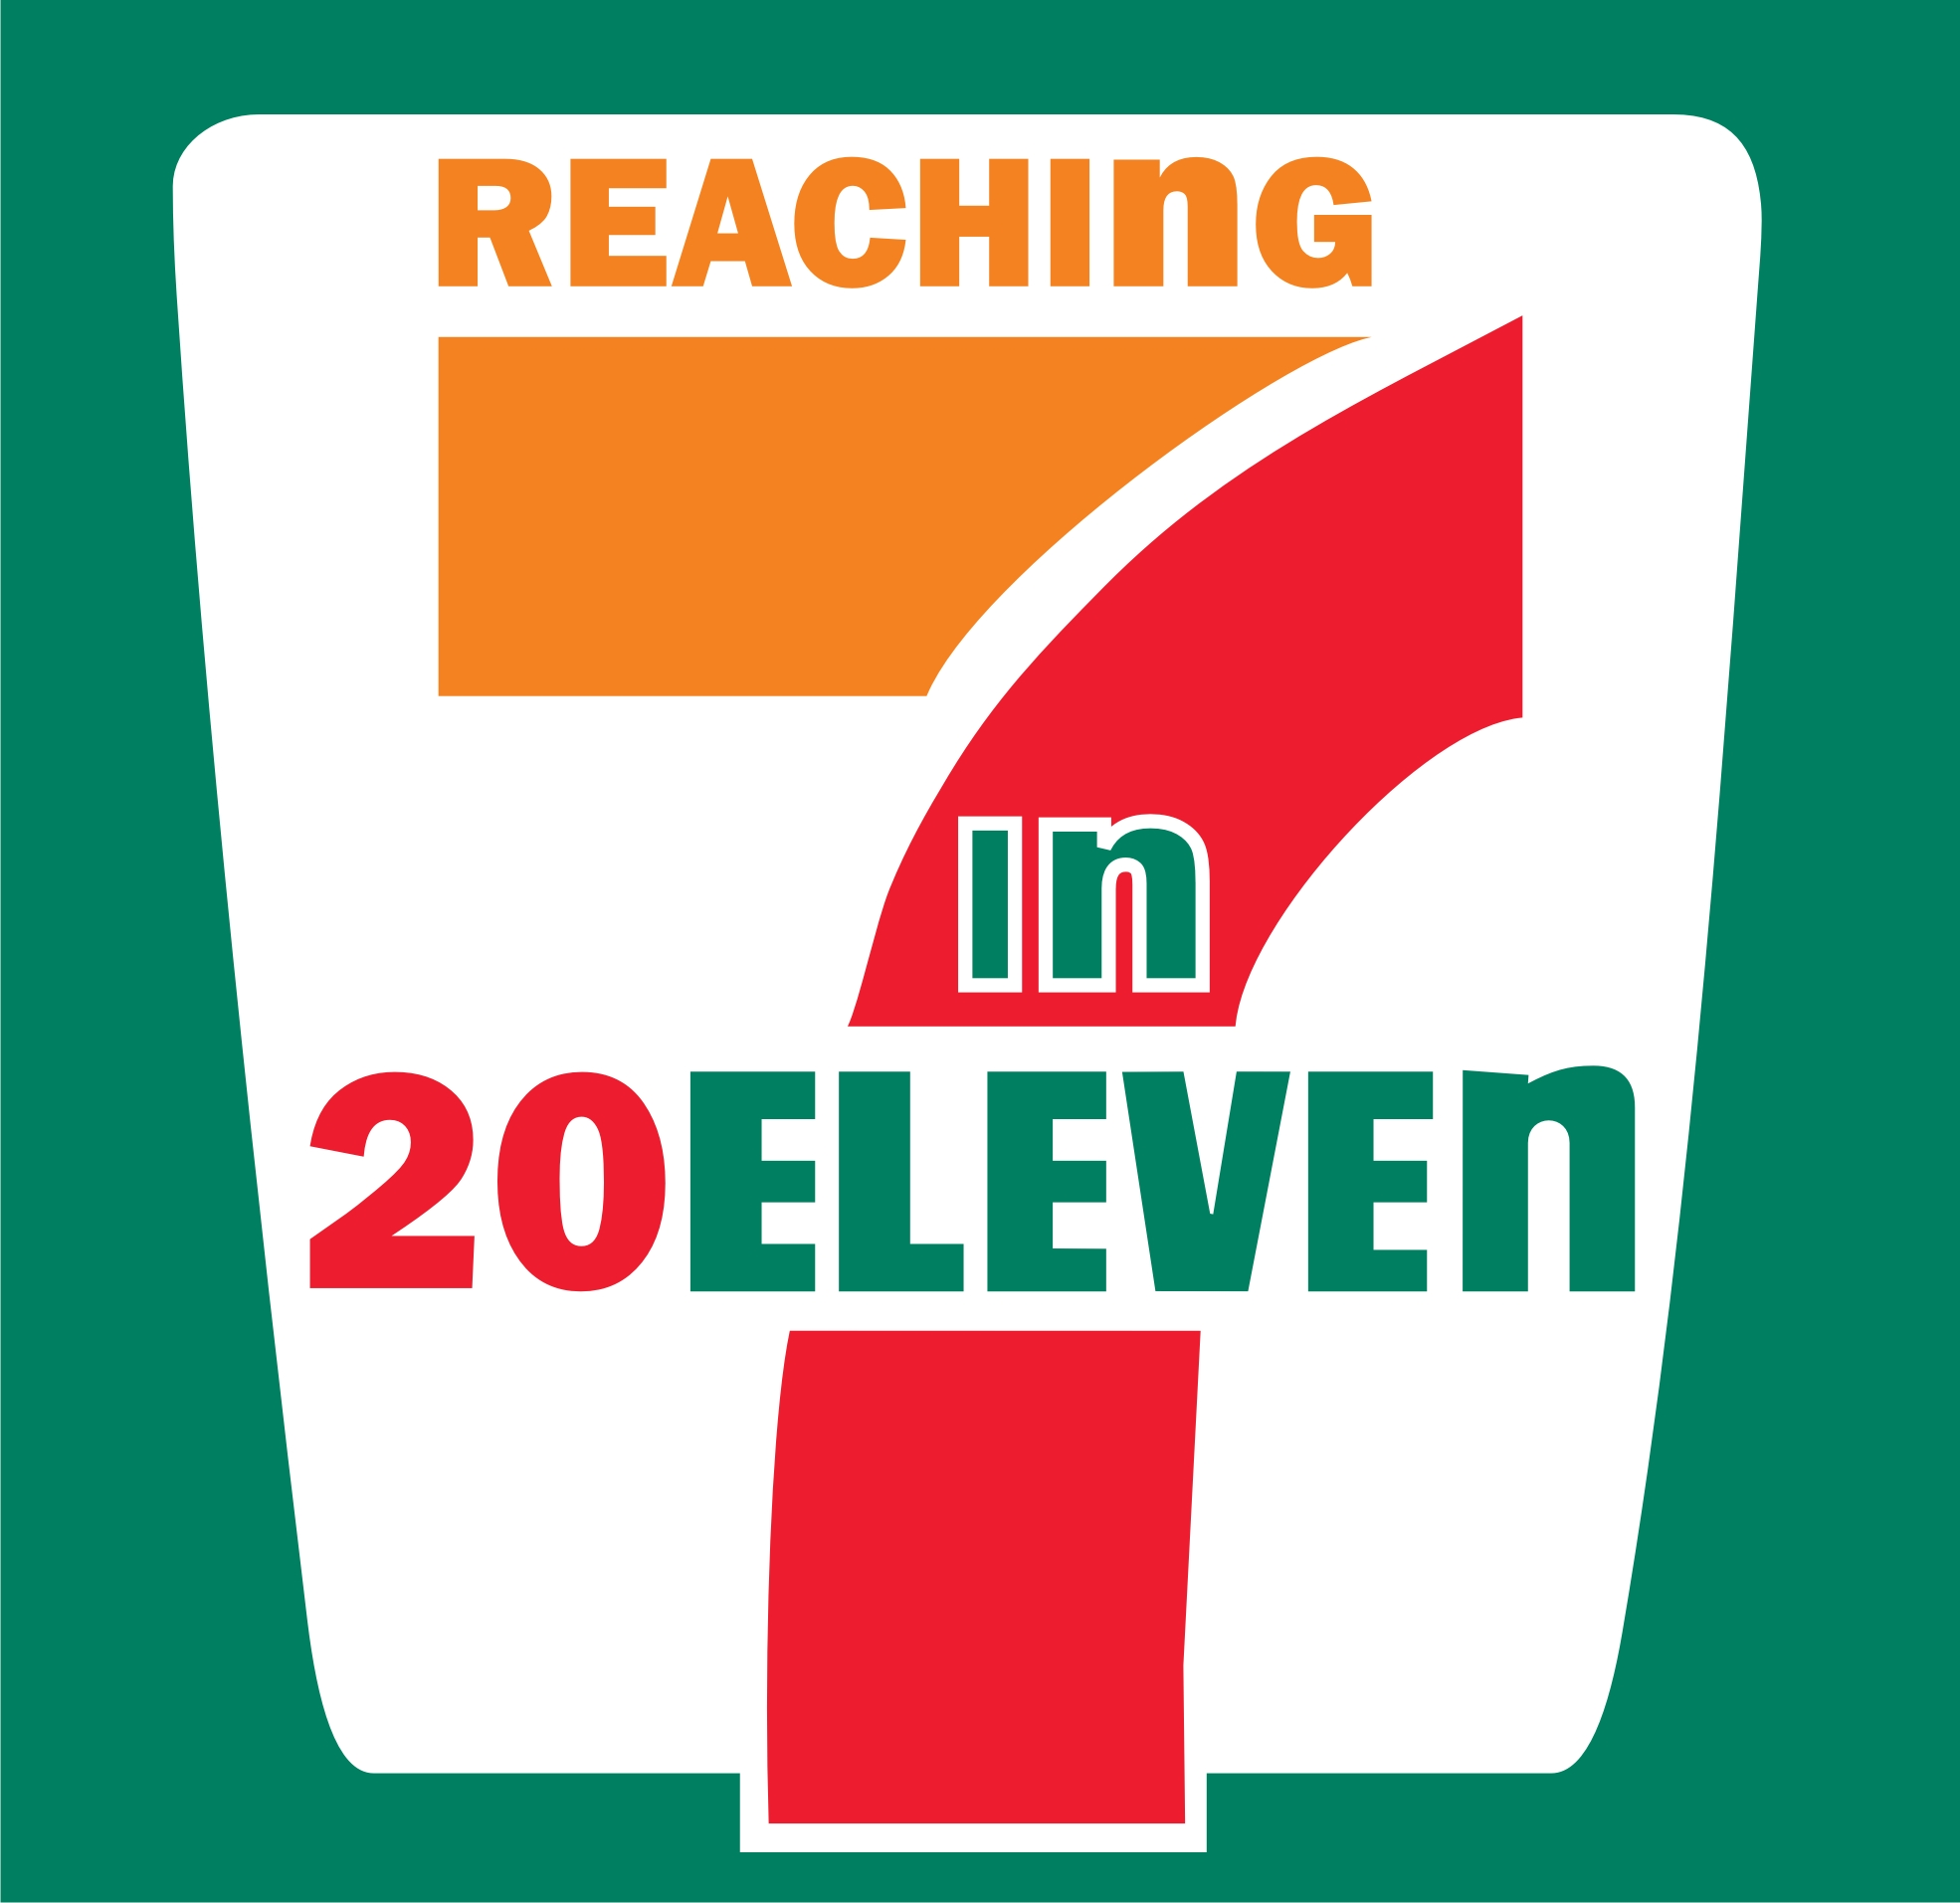 7-11 Outreach Logo | Free Images at Clker.com - vector ...